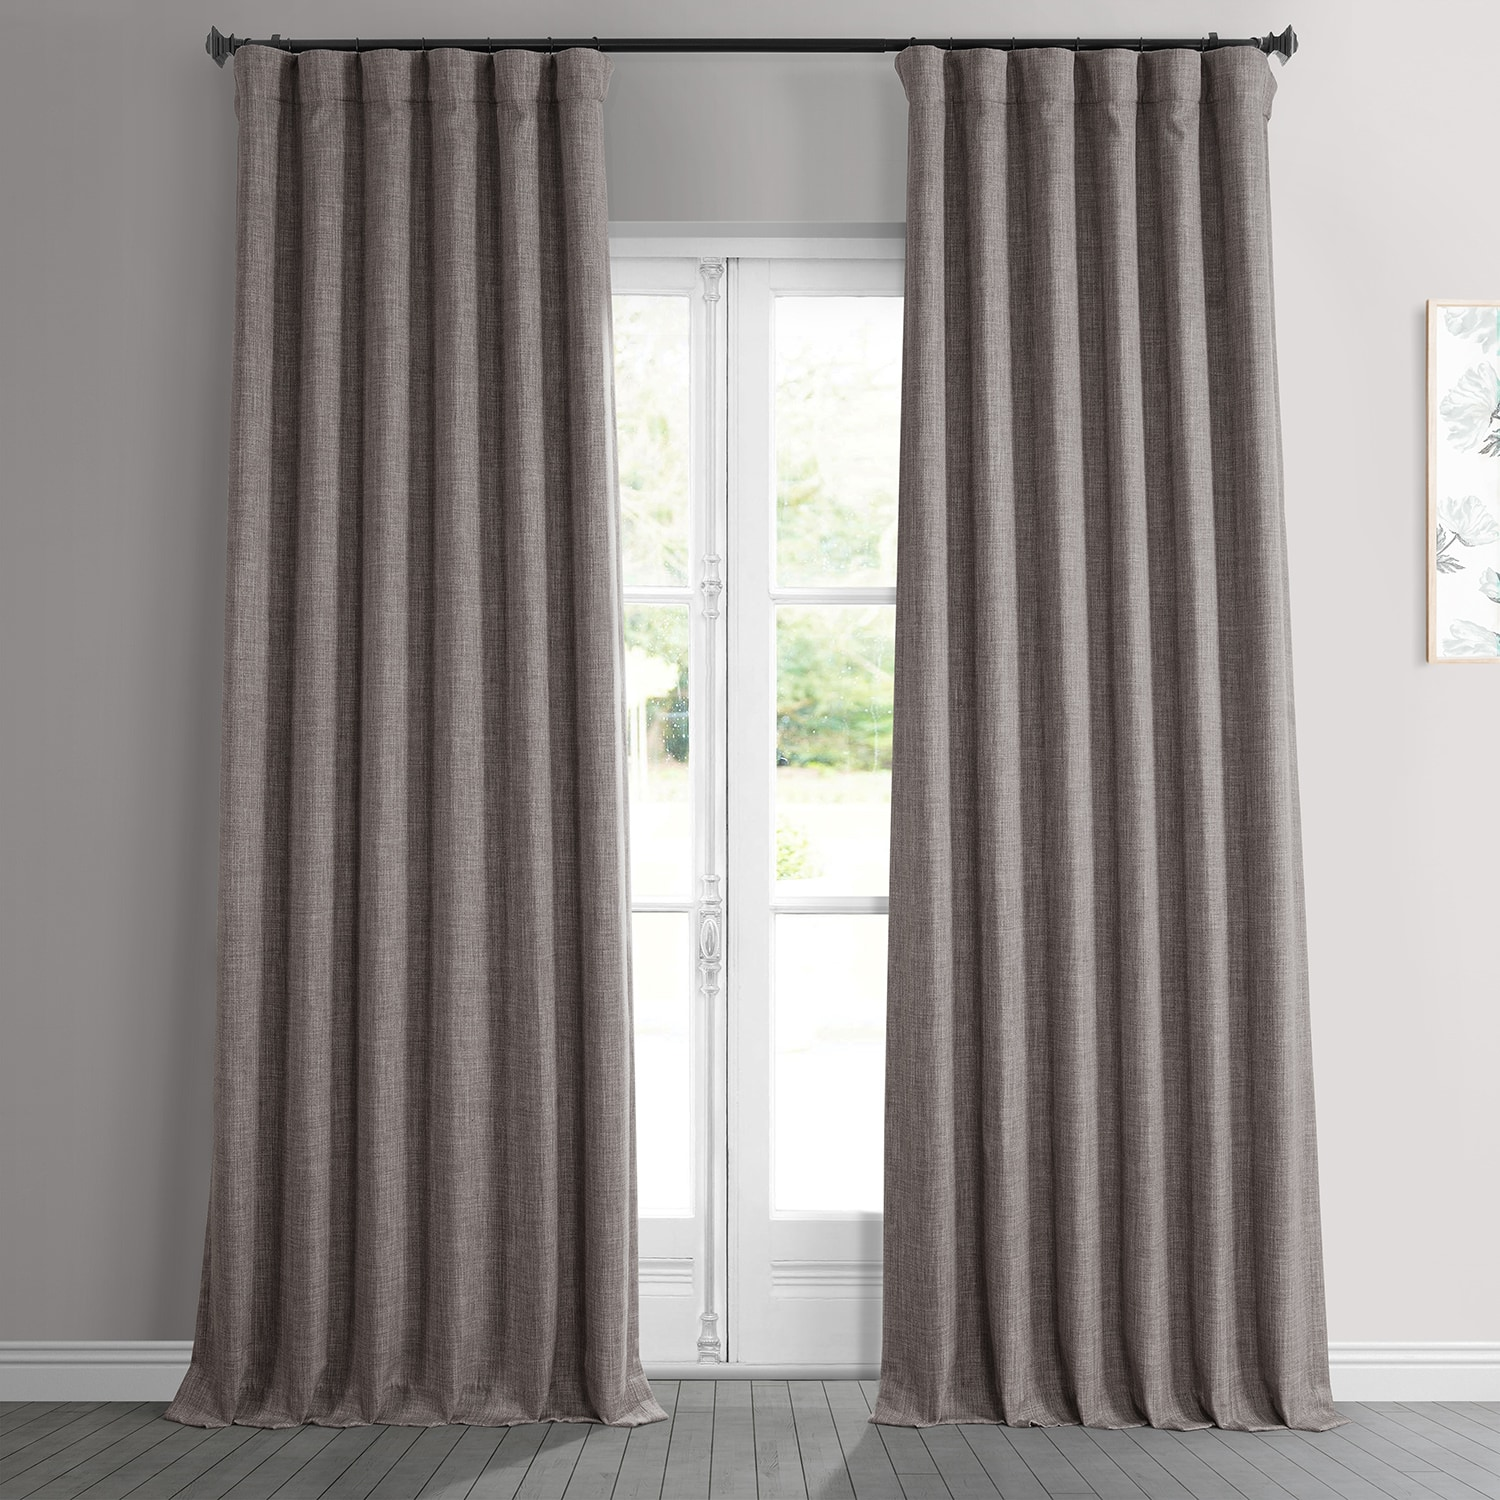 Mink Faux Linen Blackout Room Darkening Curtain